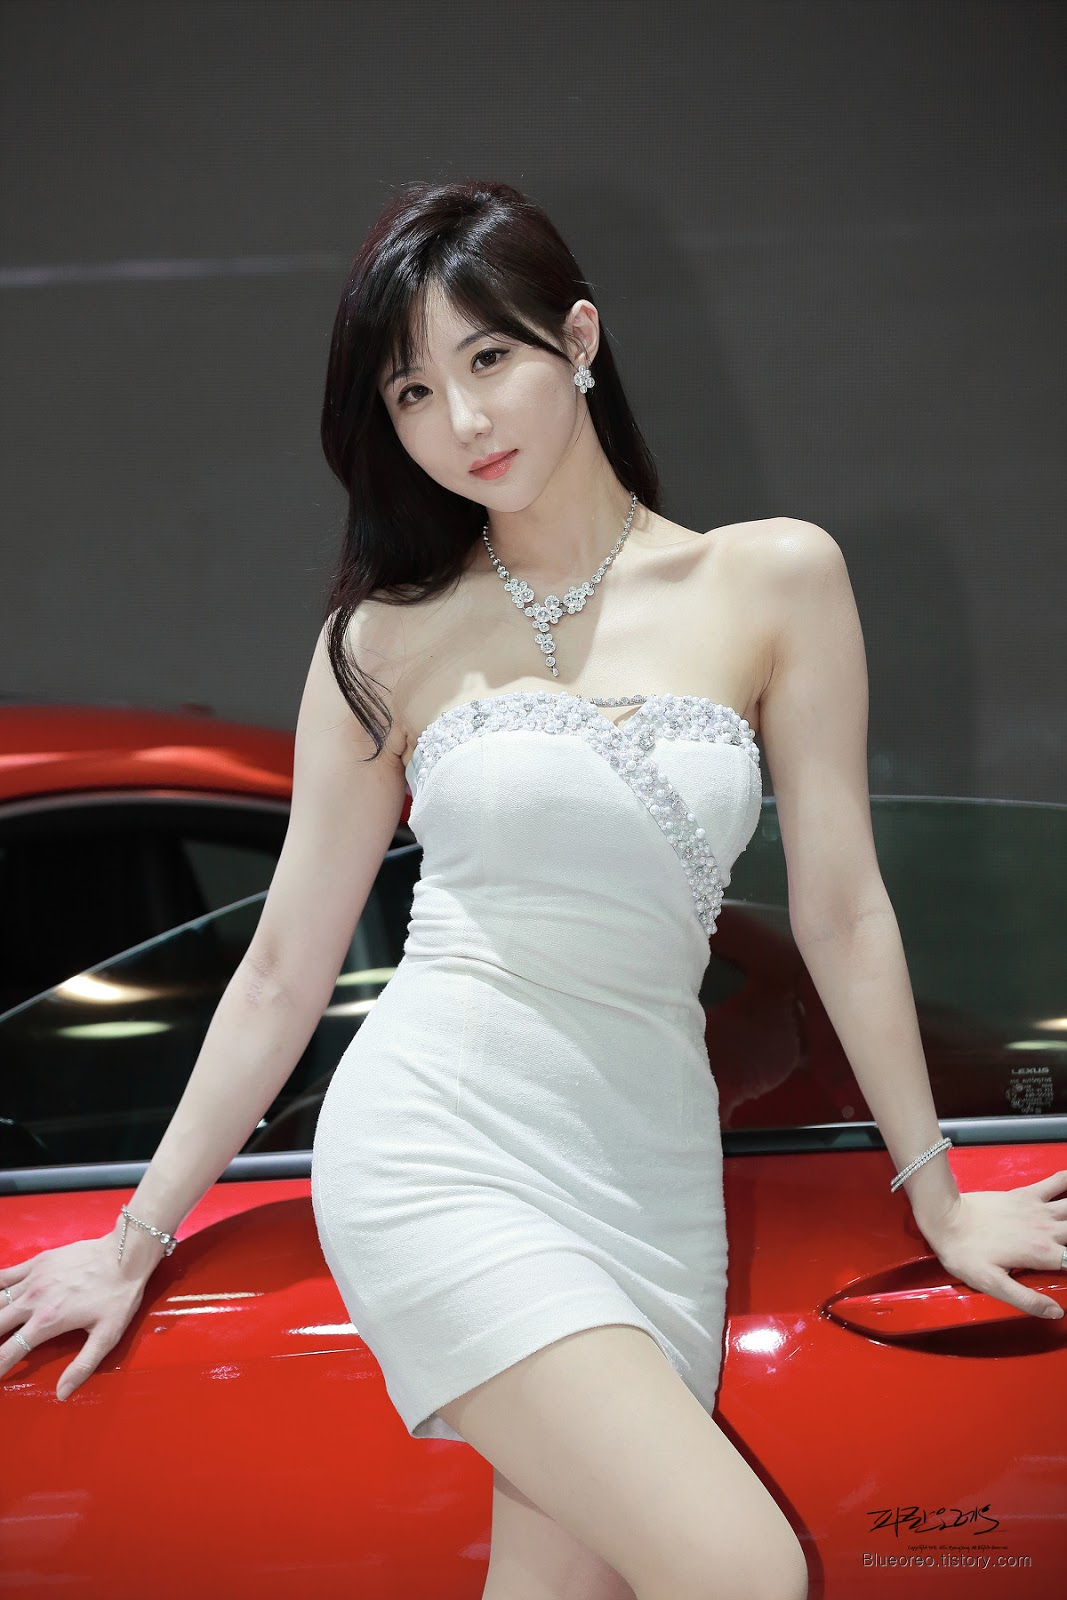 Korean Girls 100 Yeon Da Bin ̗�다빈 Ã�ン・ダビン